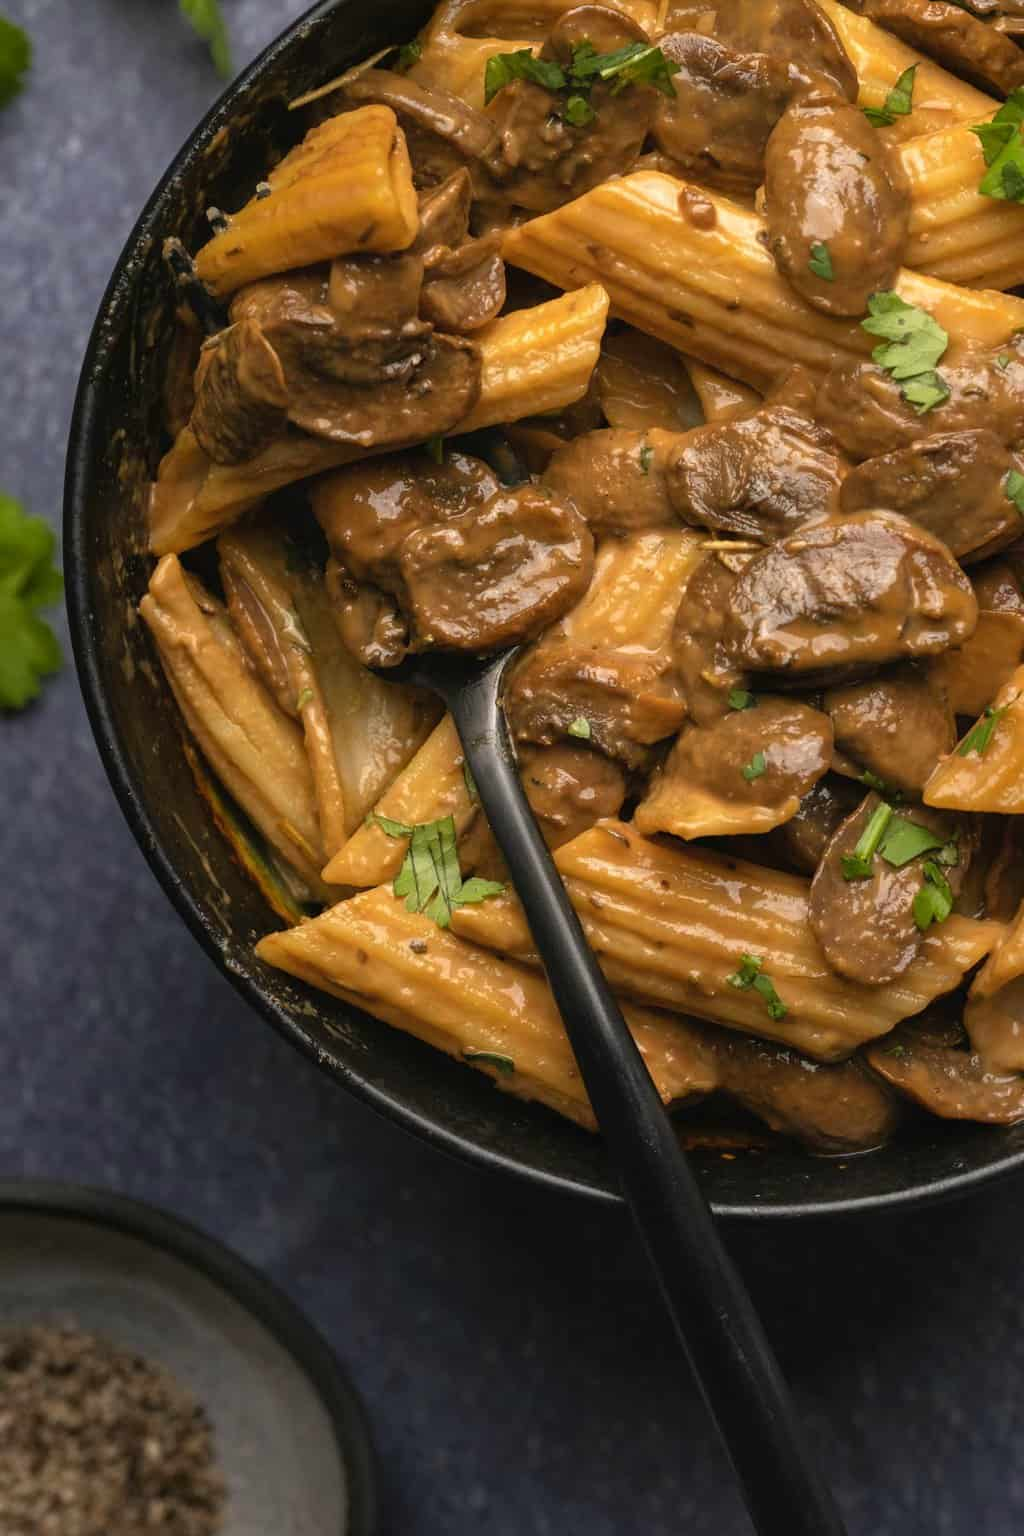 Penne with dairy free mushroom sauce and chopped cilantro in a black bowl.